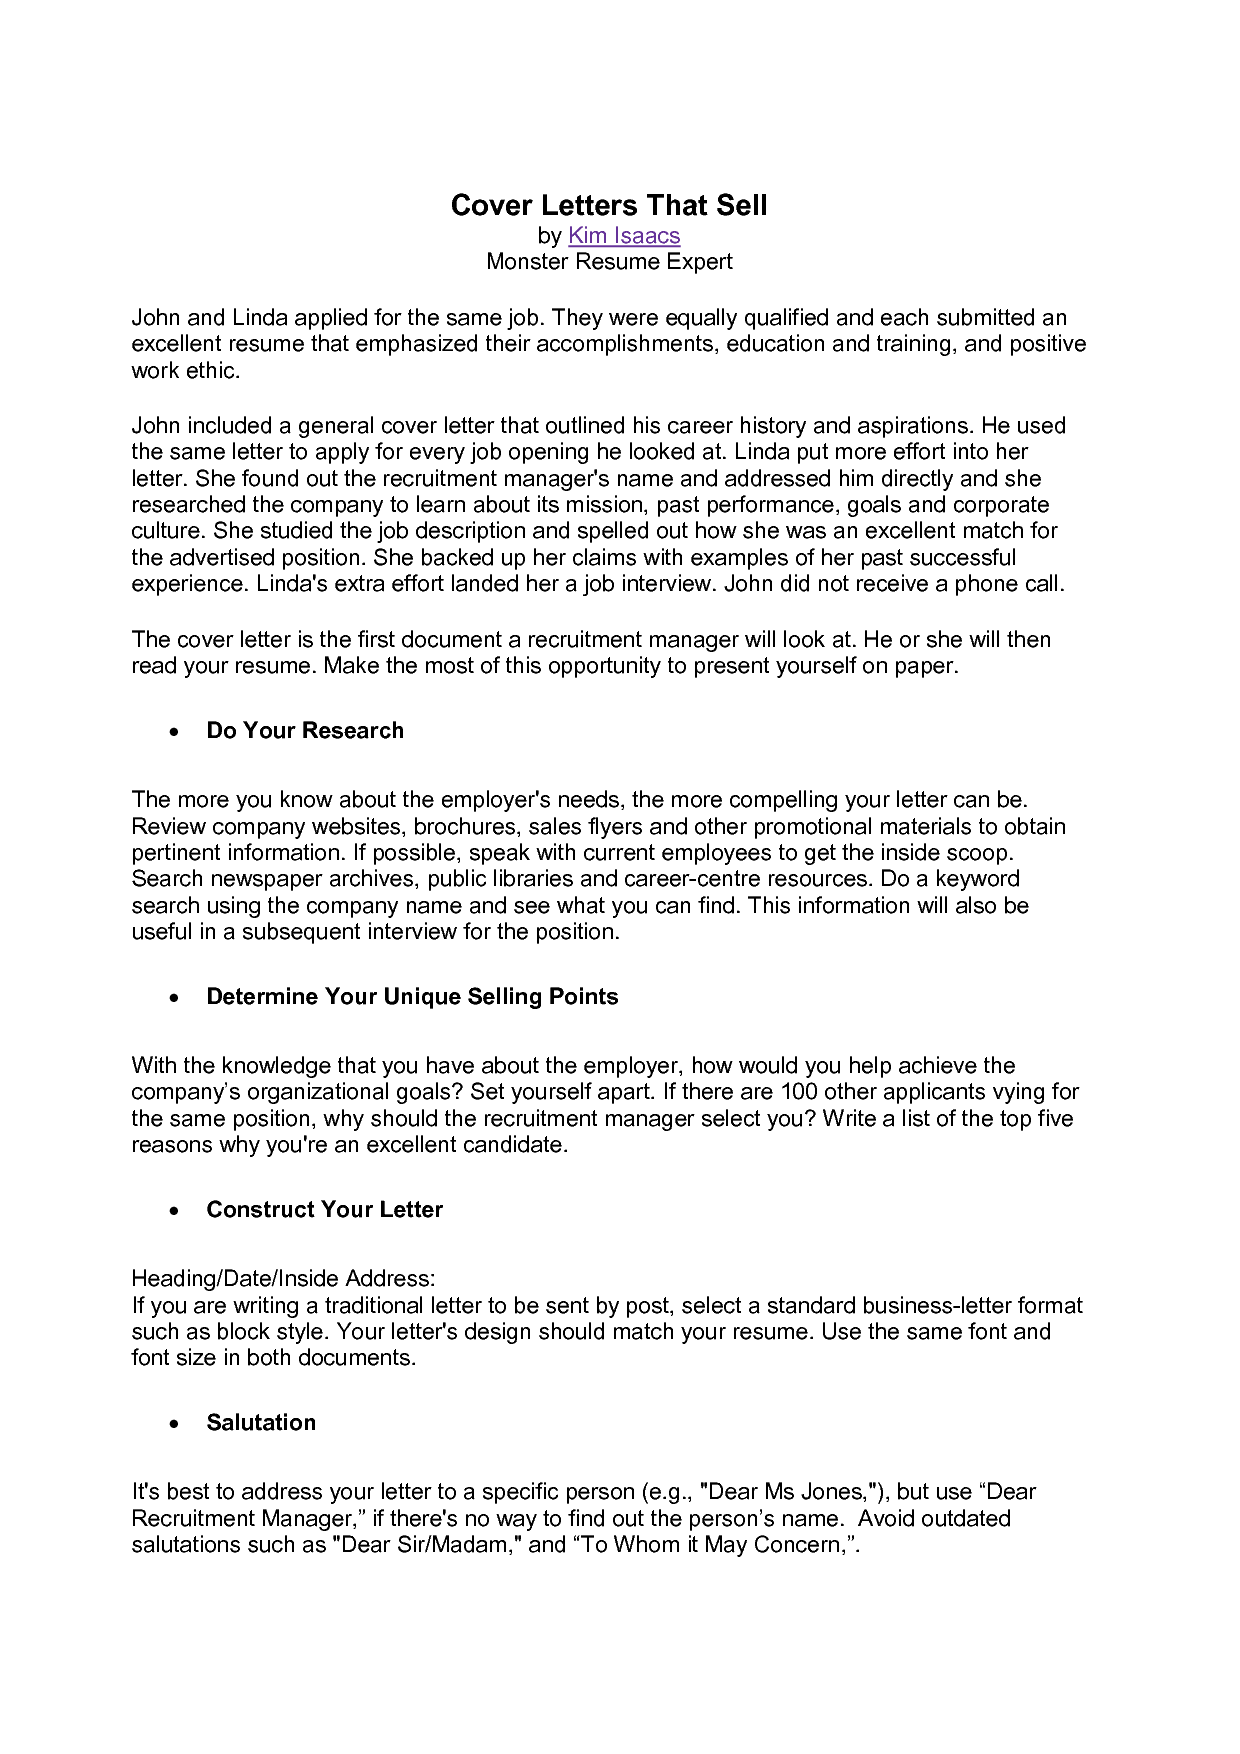 Monster Cover Letter Free Download Monster Cover Letter, Monster Cover  Letter Template, Monster Cover  Free Cover Letter Template Downloads